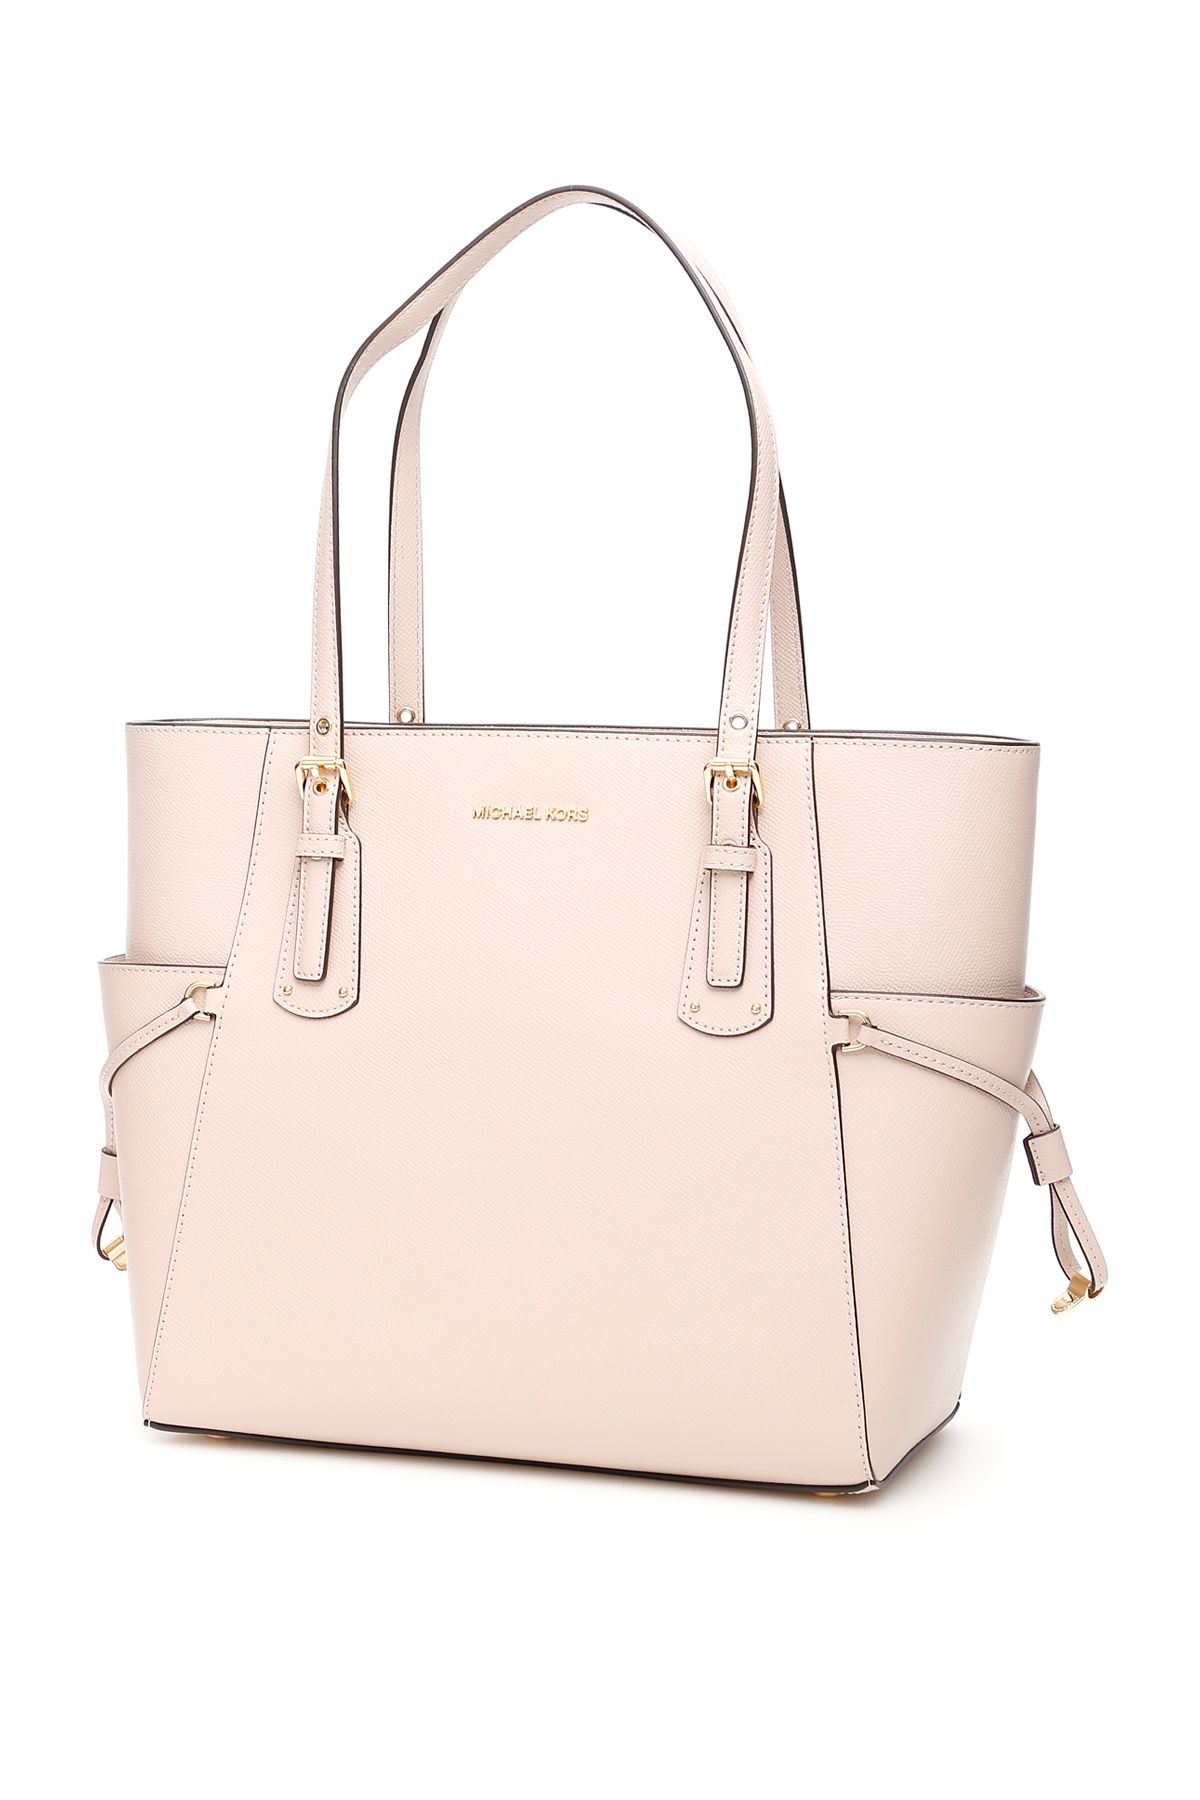 b1d2b28d18e060 MICHAEL Michael Kors MICHAEL Michael Kors Voyager Leather Tote Bag ...